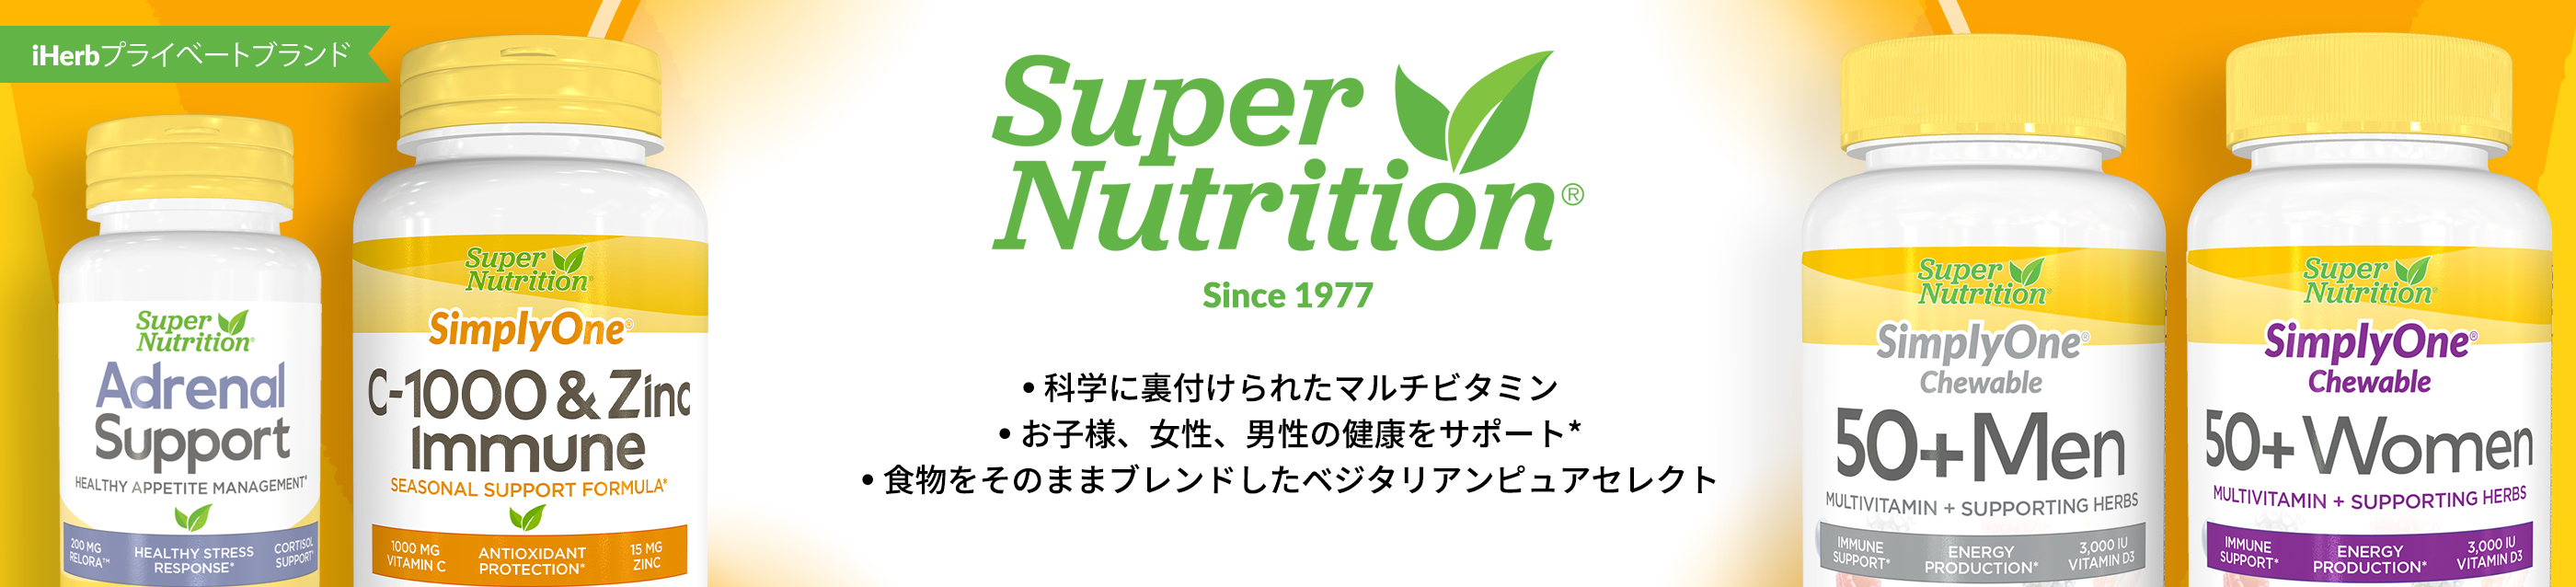 Super Nutrition(スーパーニュートリション)